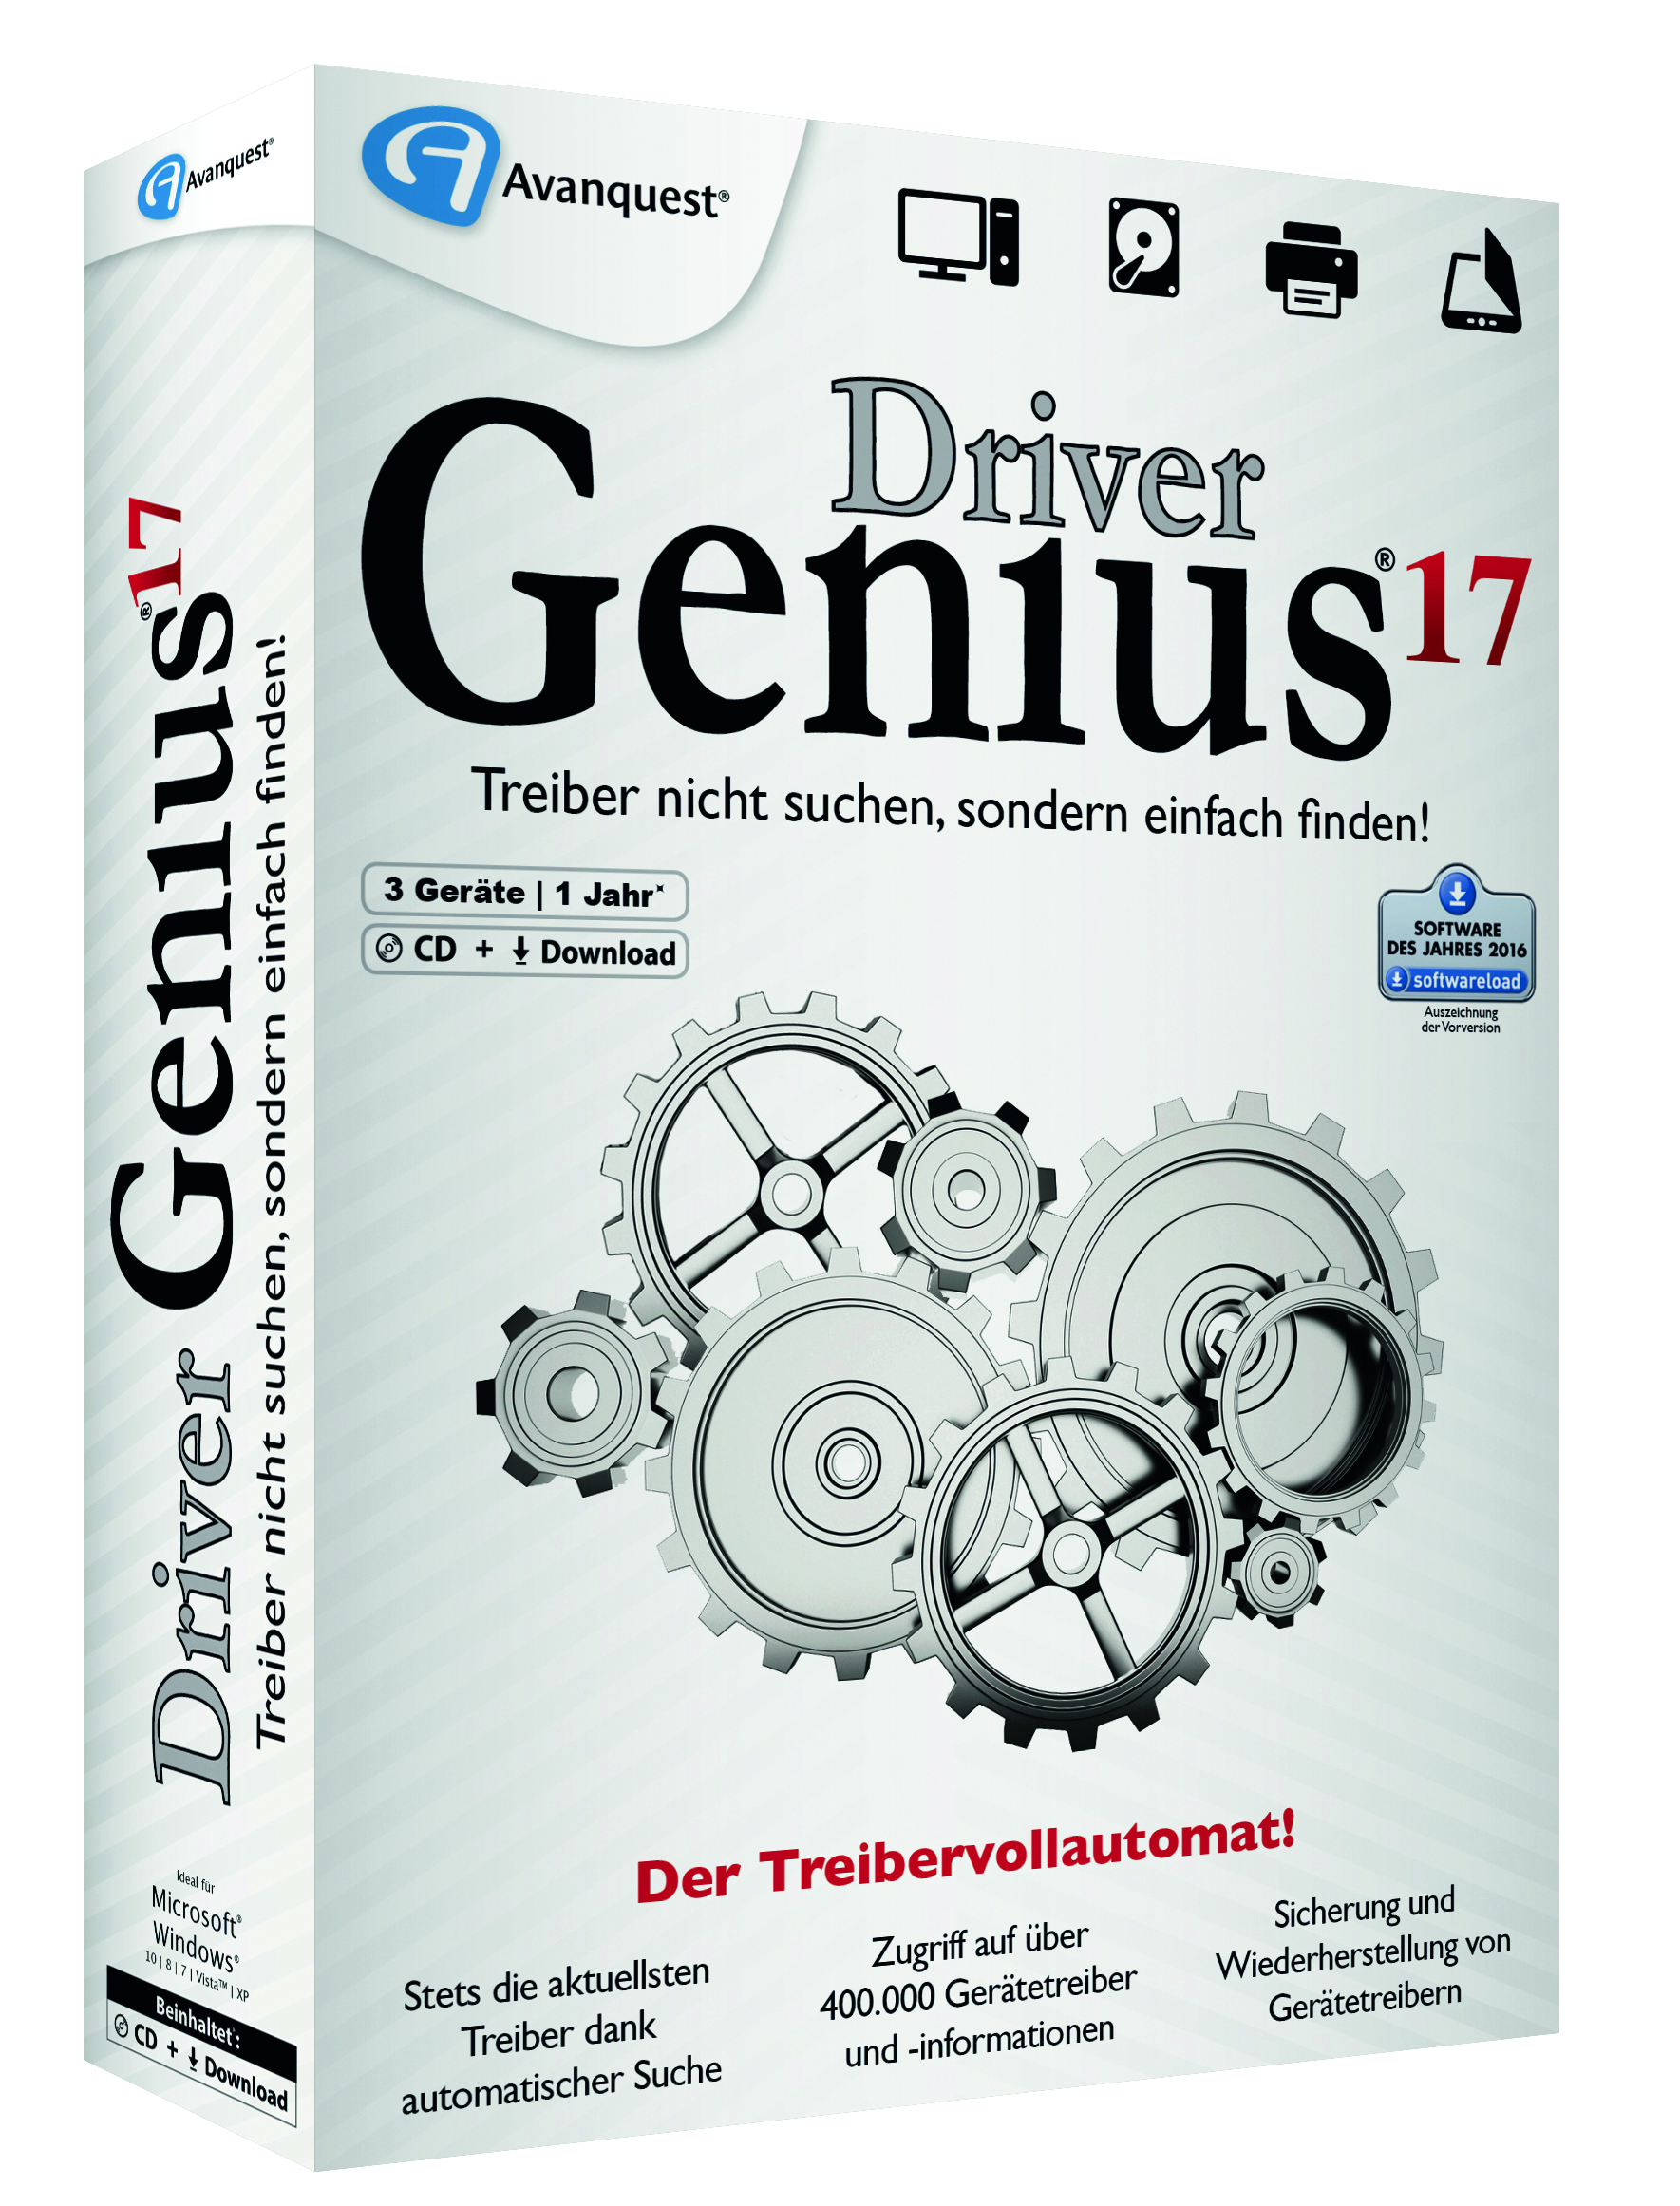 DriverGenius17 3D links 300dpi CMYK